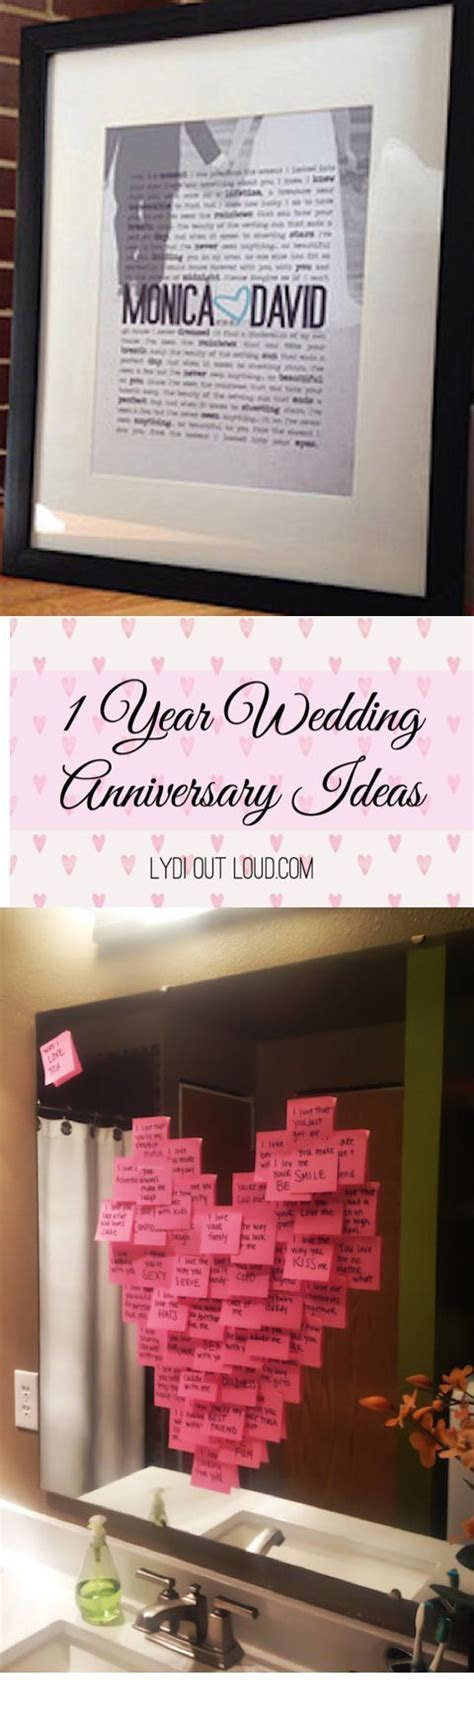 1 Year Anniversary Gift Ideas   Lydi Out Loud